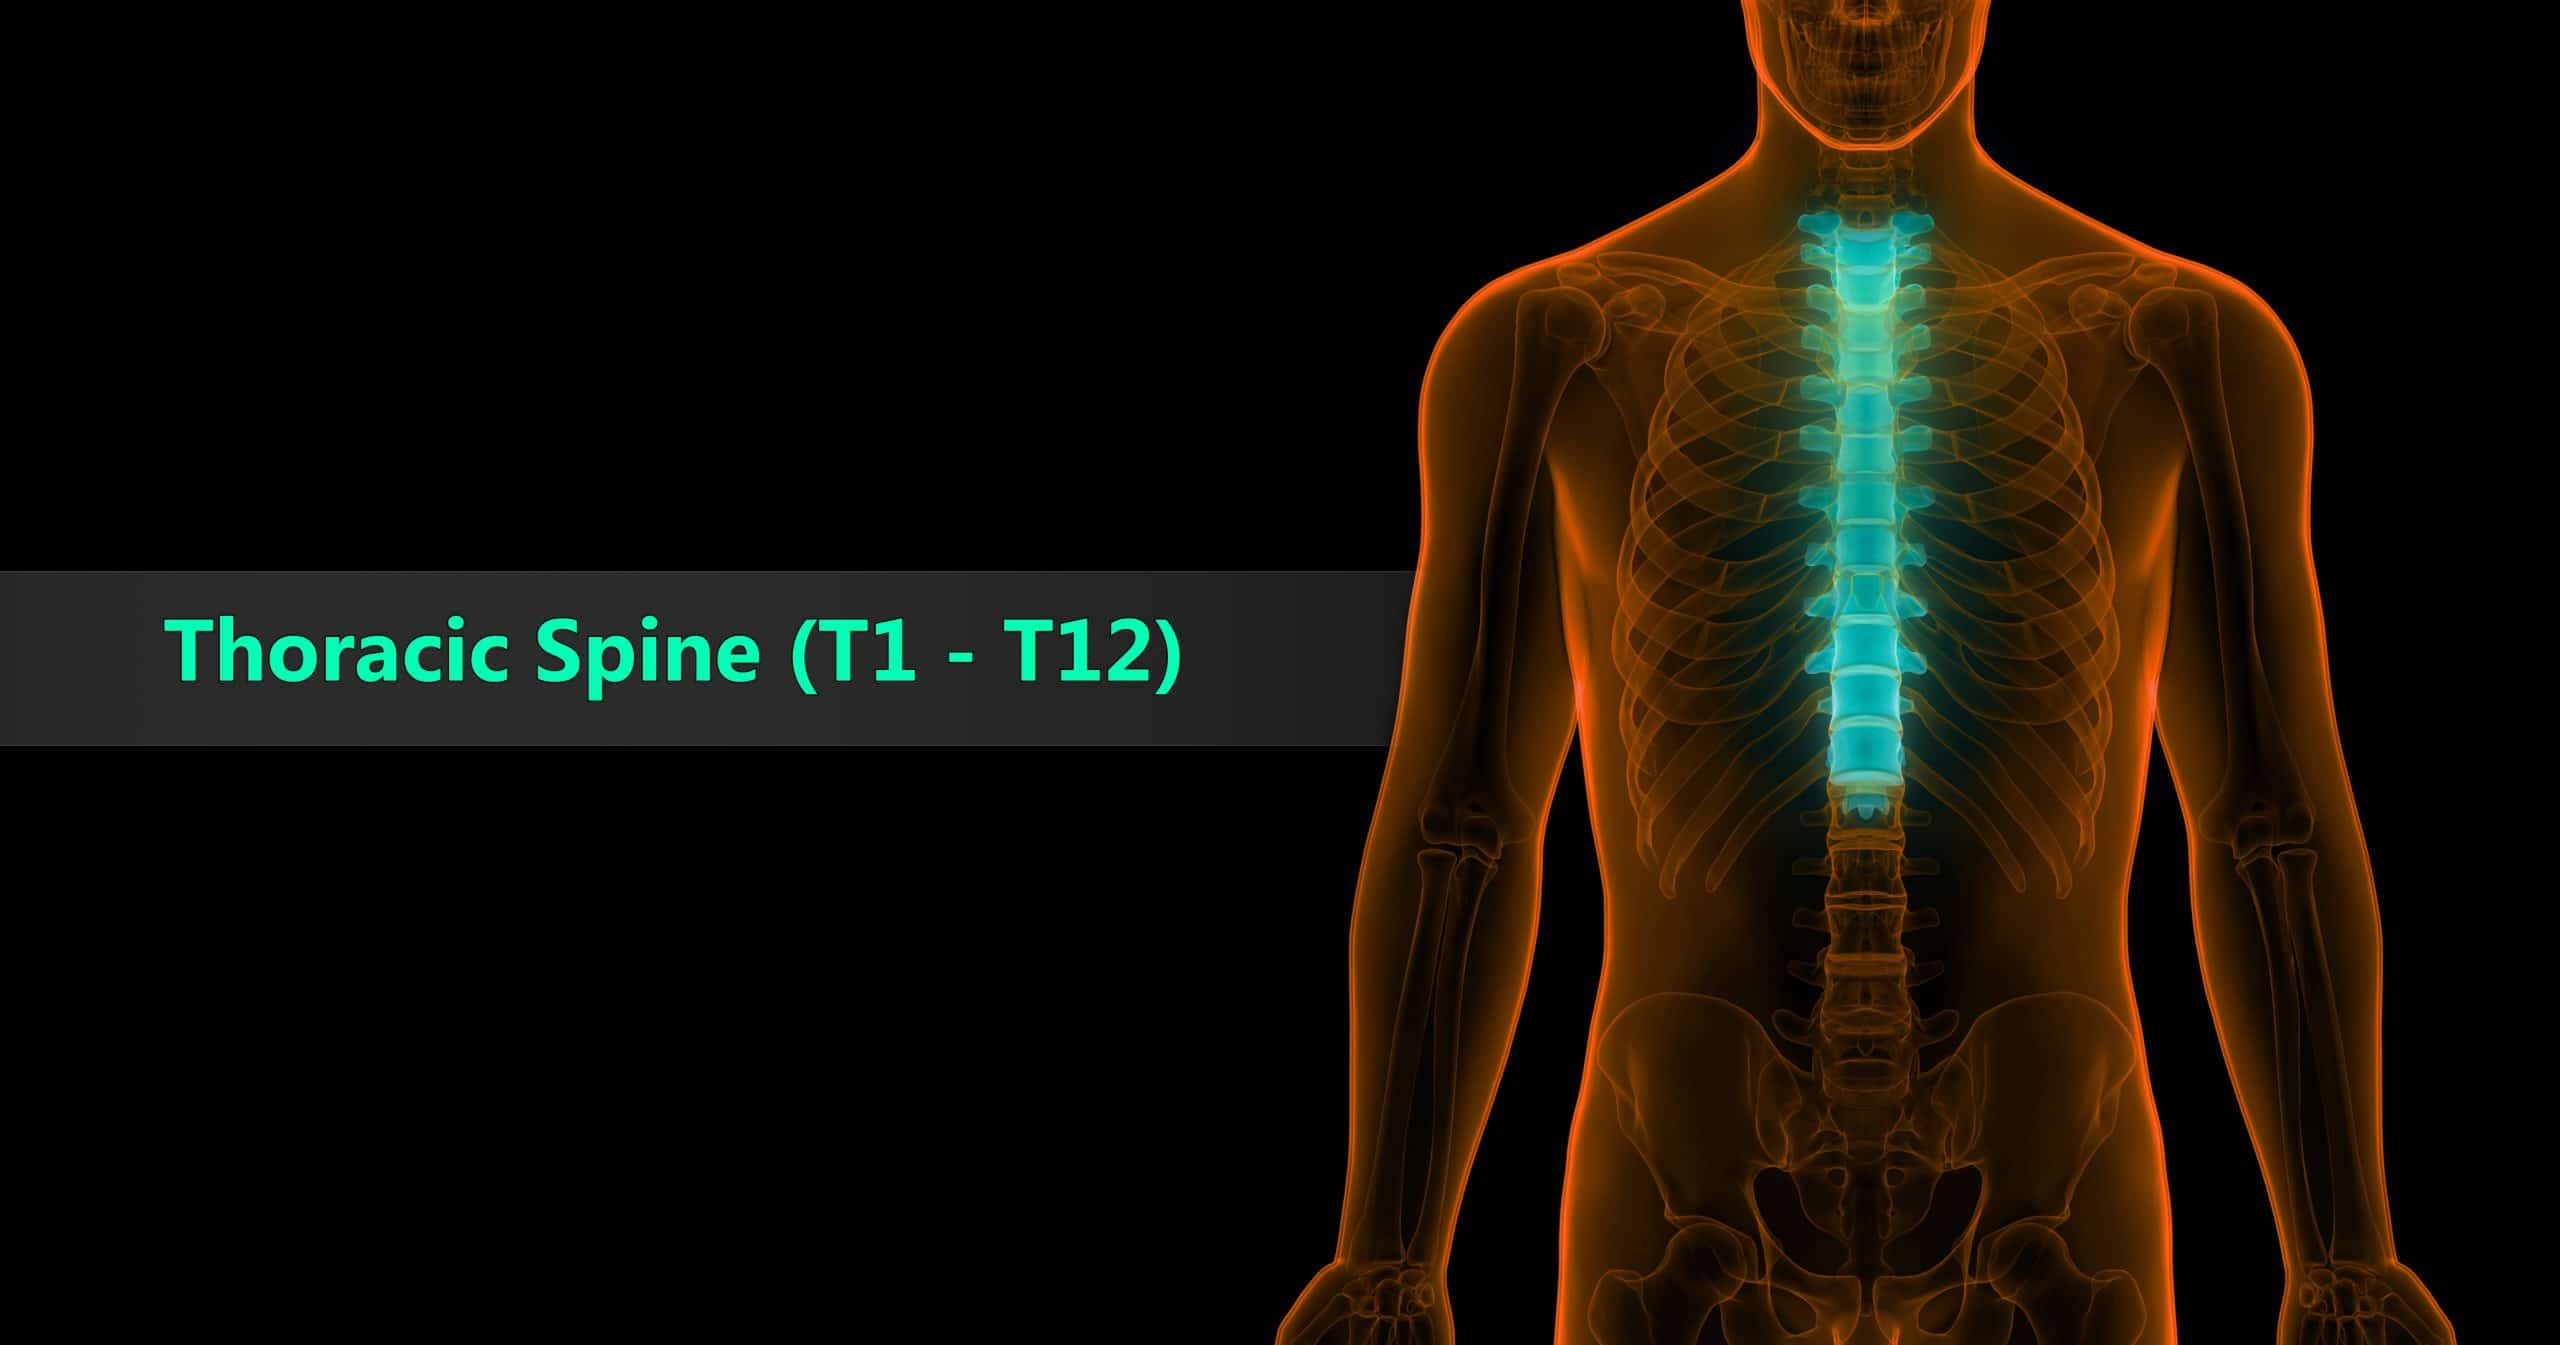 Thoracic Spine VA Rating